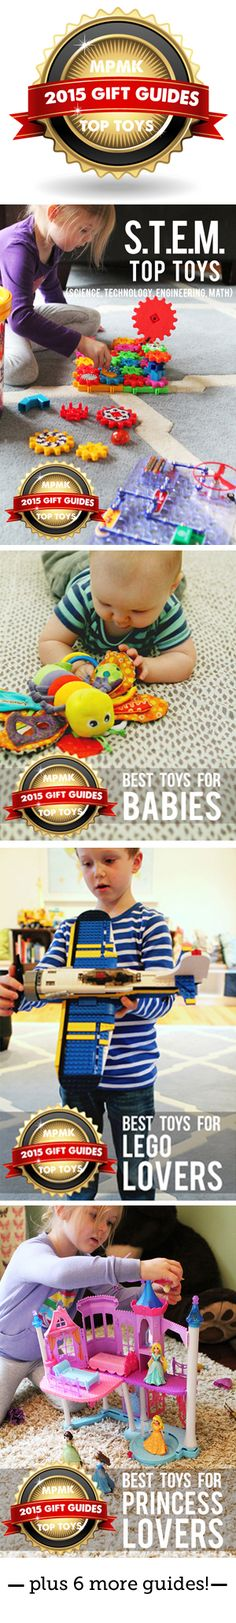 Best gift guides out there for kids - use them every year to find great toys that will keep the kids engaged again and again!